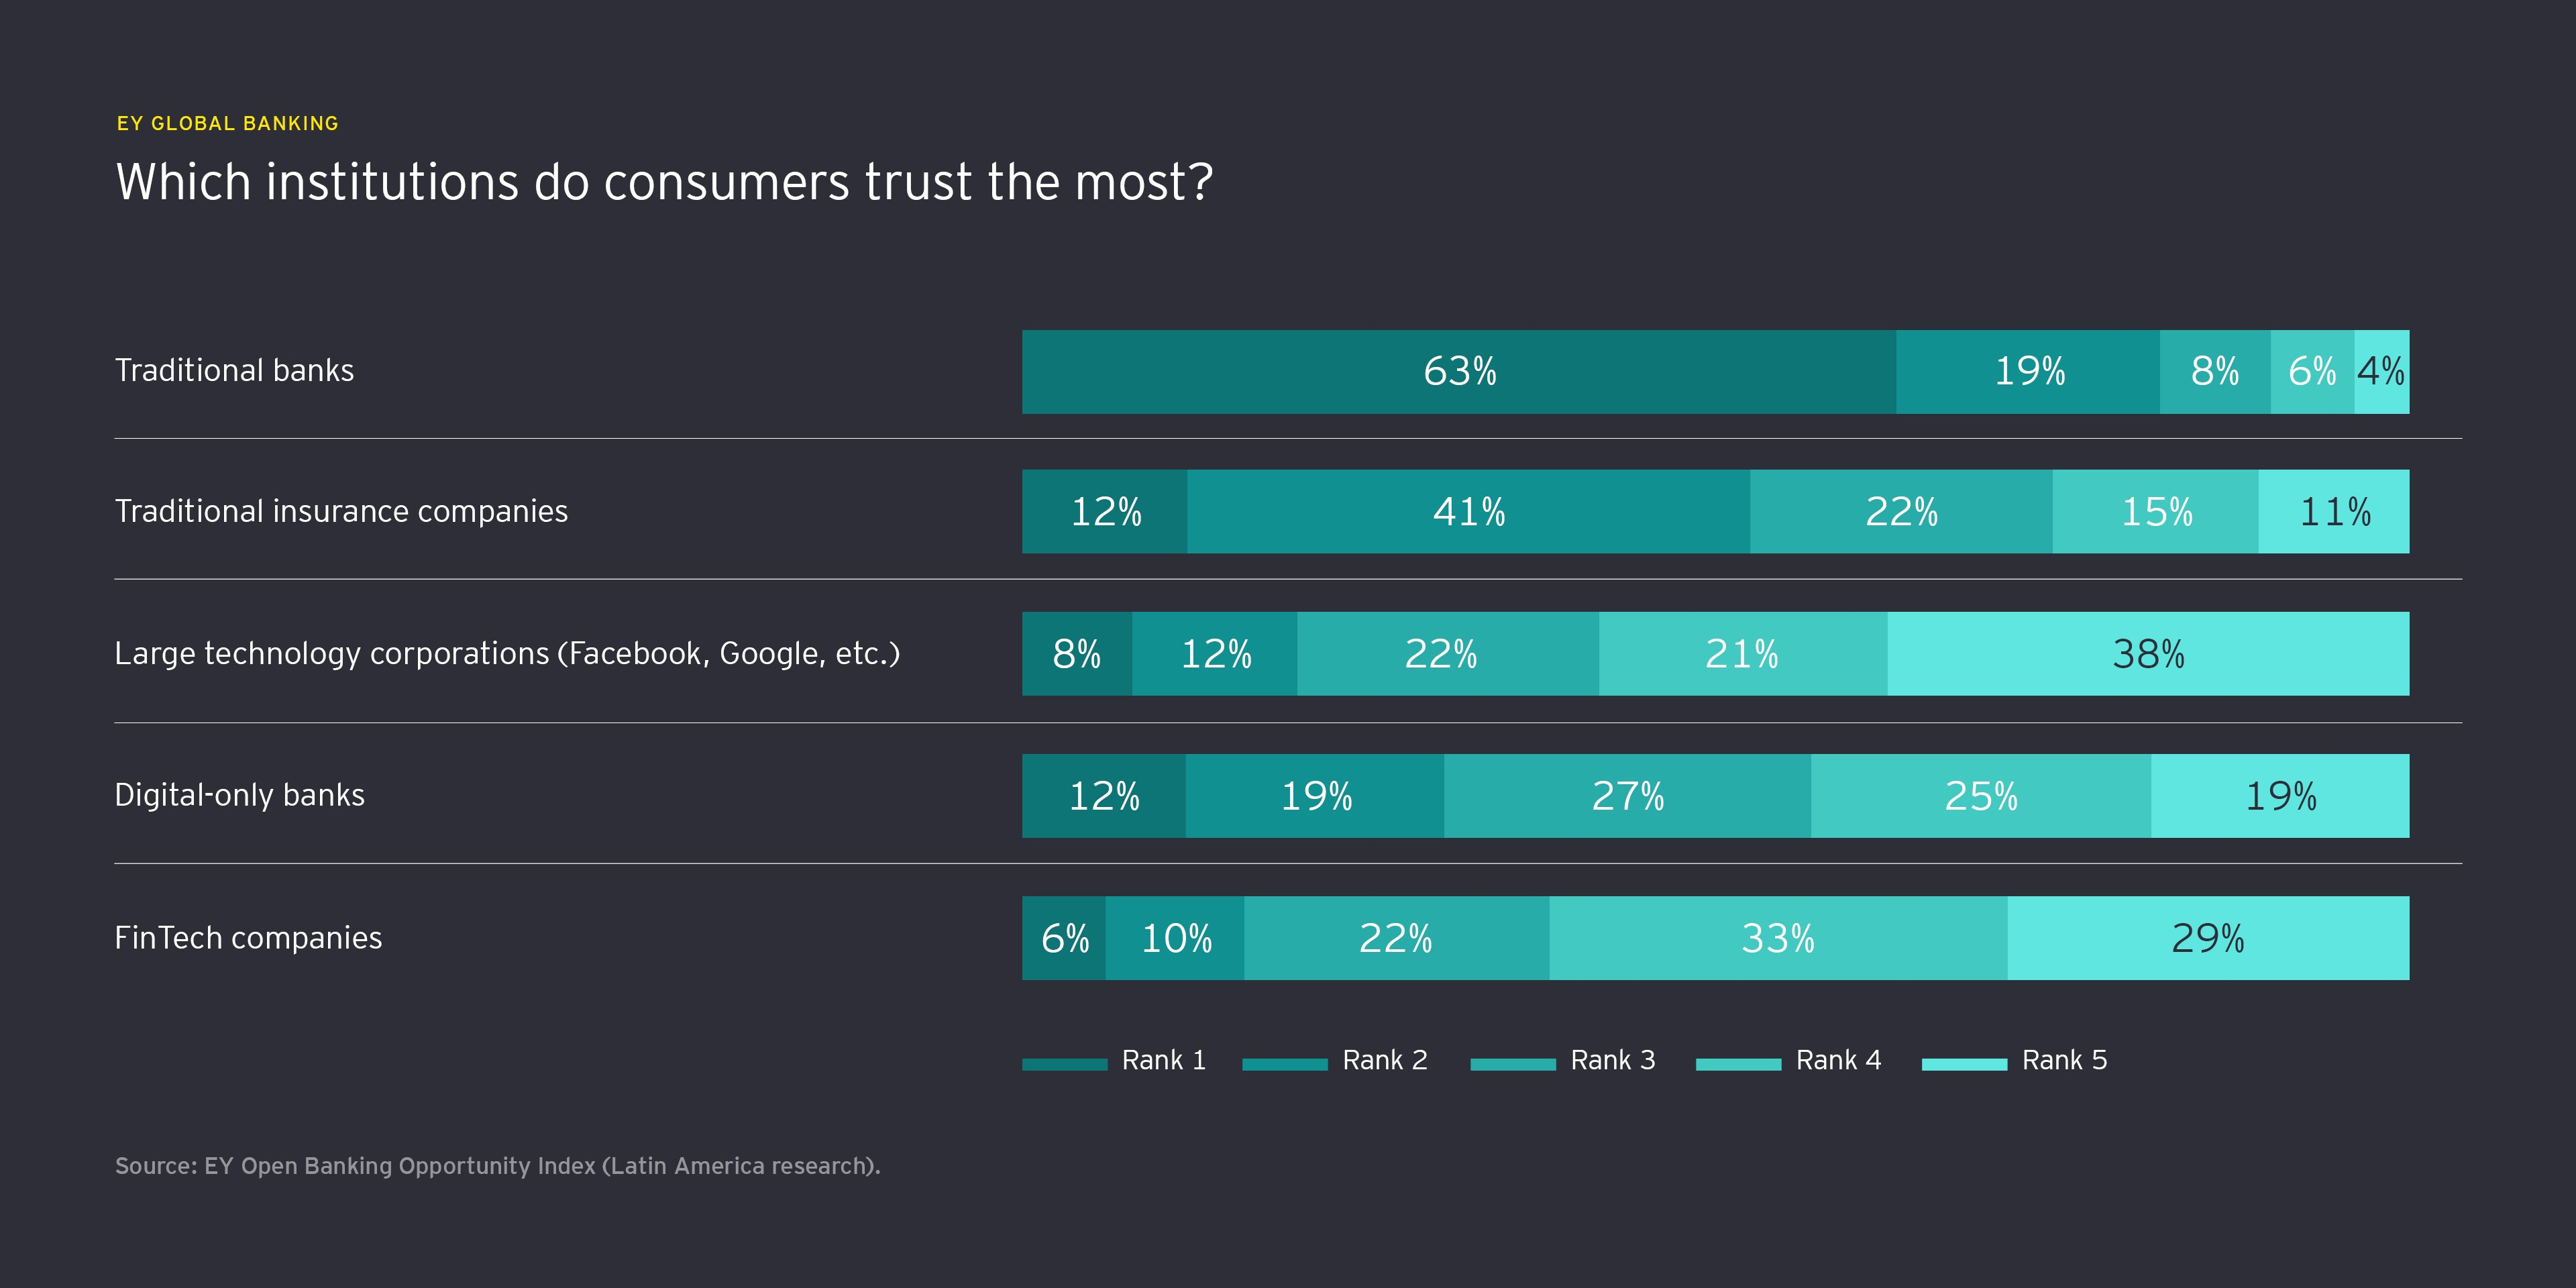 Which institutions do consumers trust the most